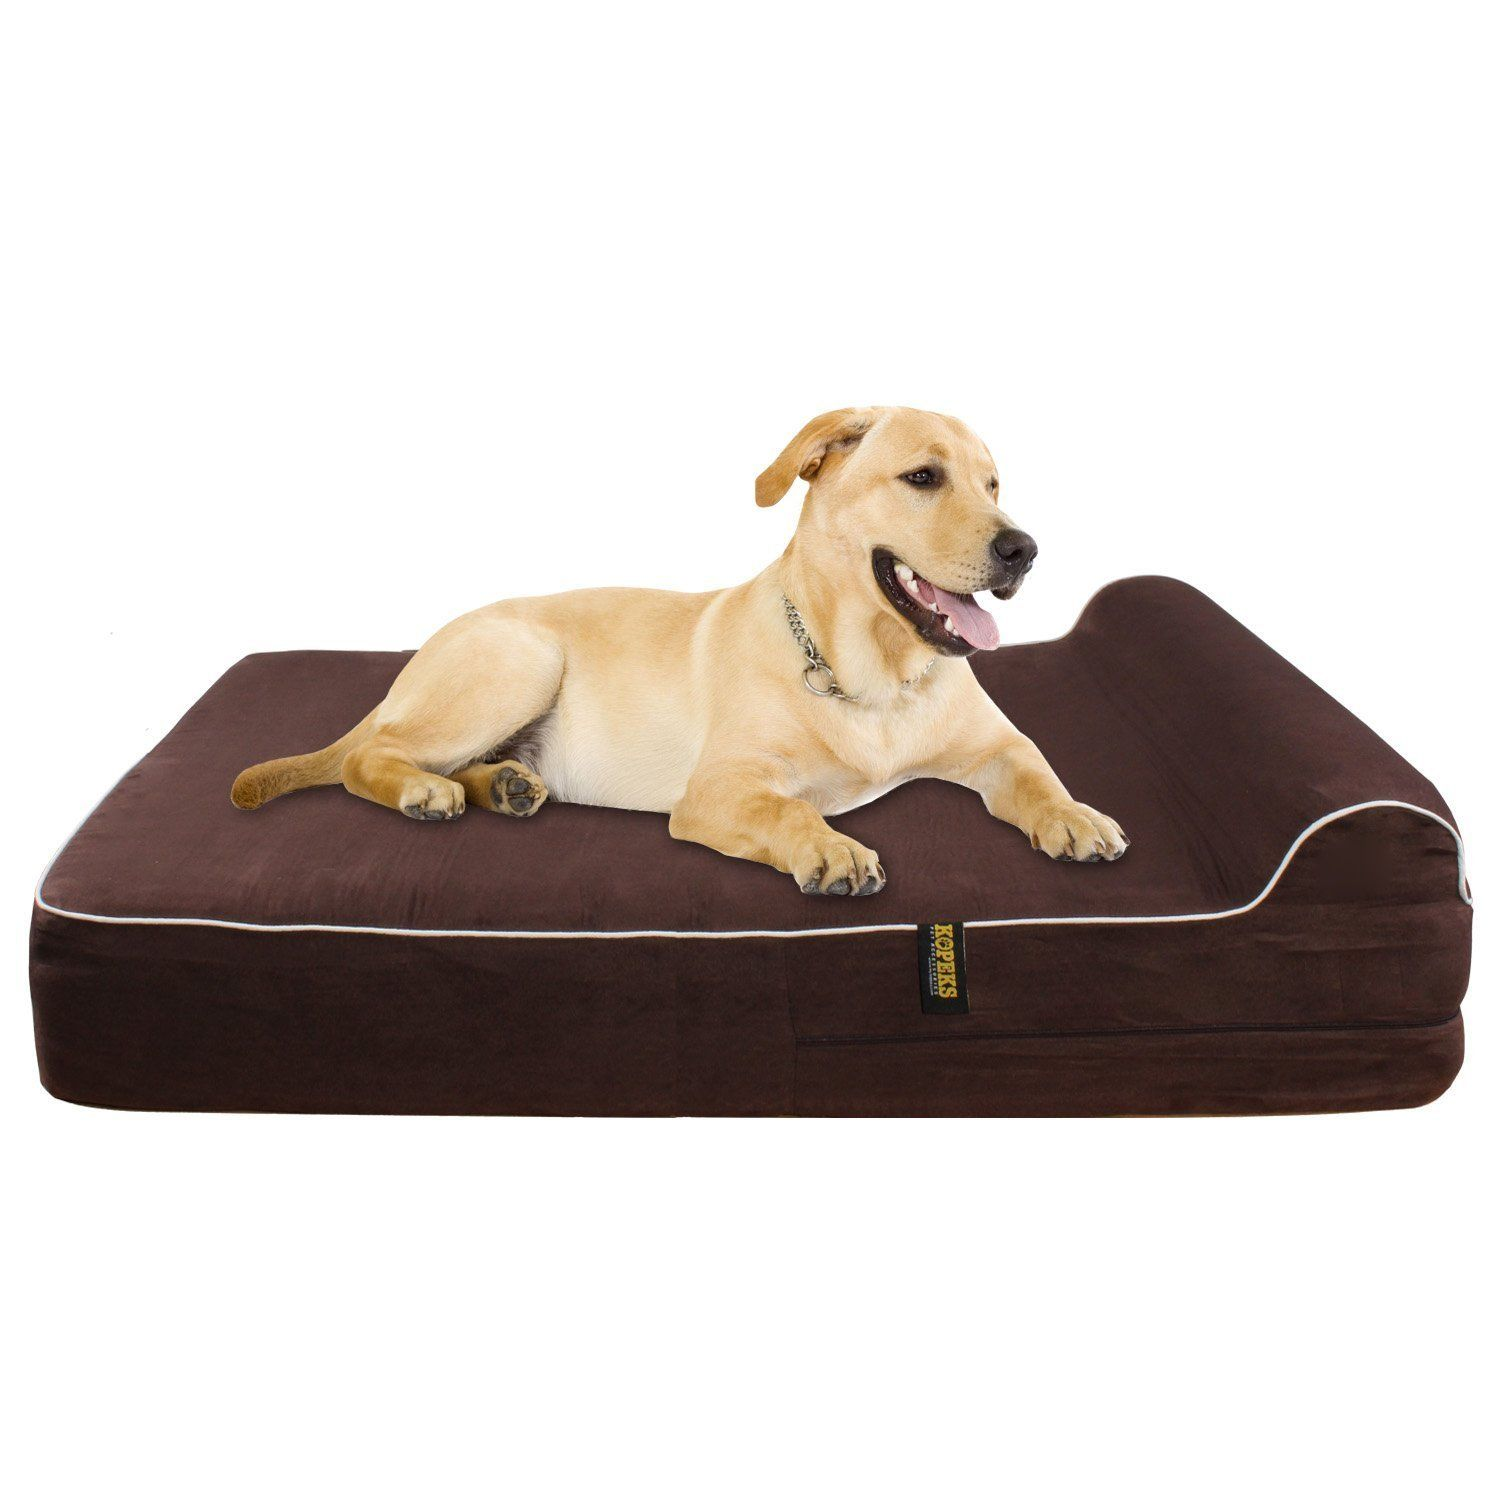 Kopeks Orthopedic Memory Foam Dog Bed With Pillow And Waterproof Liner And Antislip Bottom Jumbo Xl Extra Large Dog Bed Best Orthopedic Dog Bed Cool Dog Beds